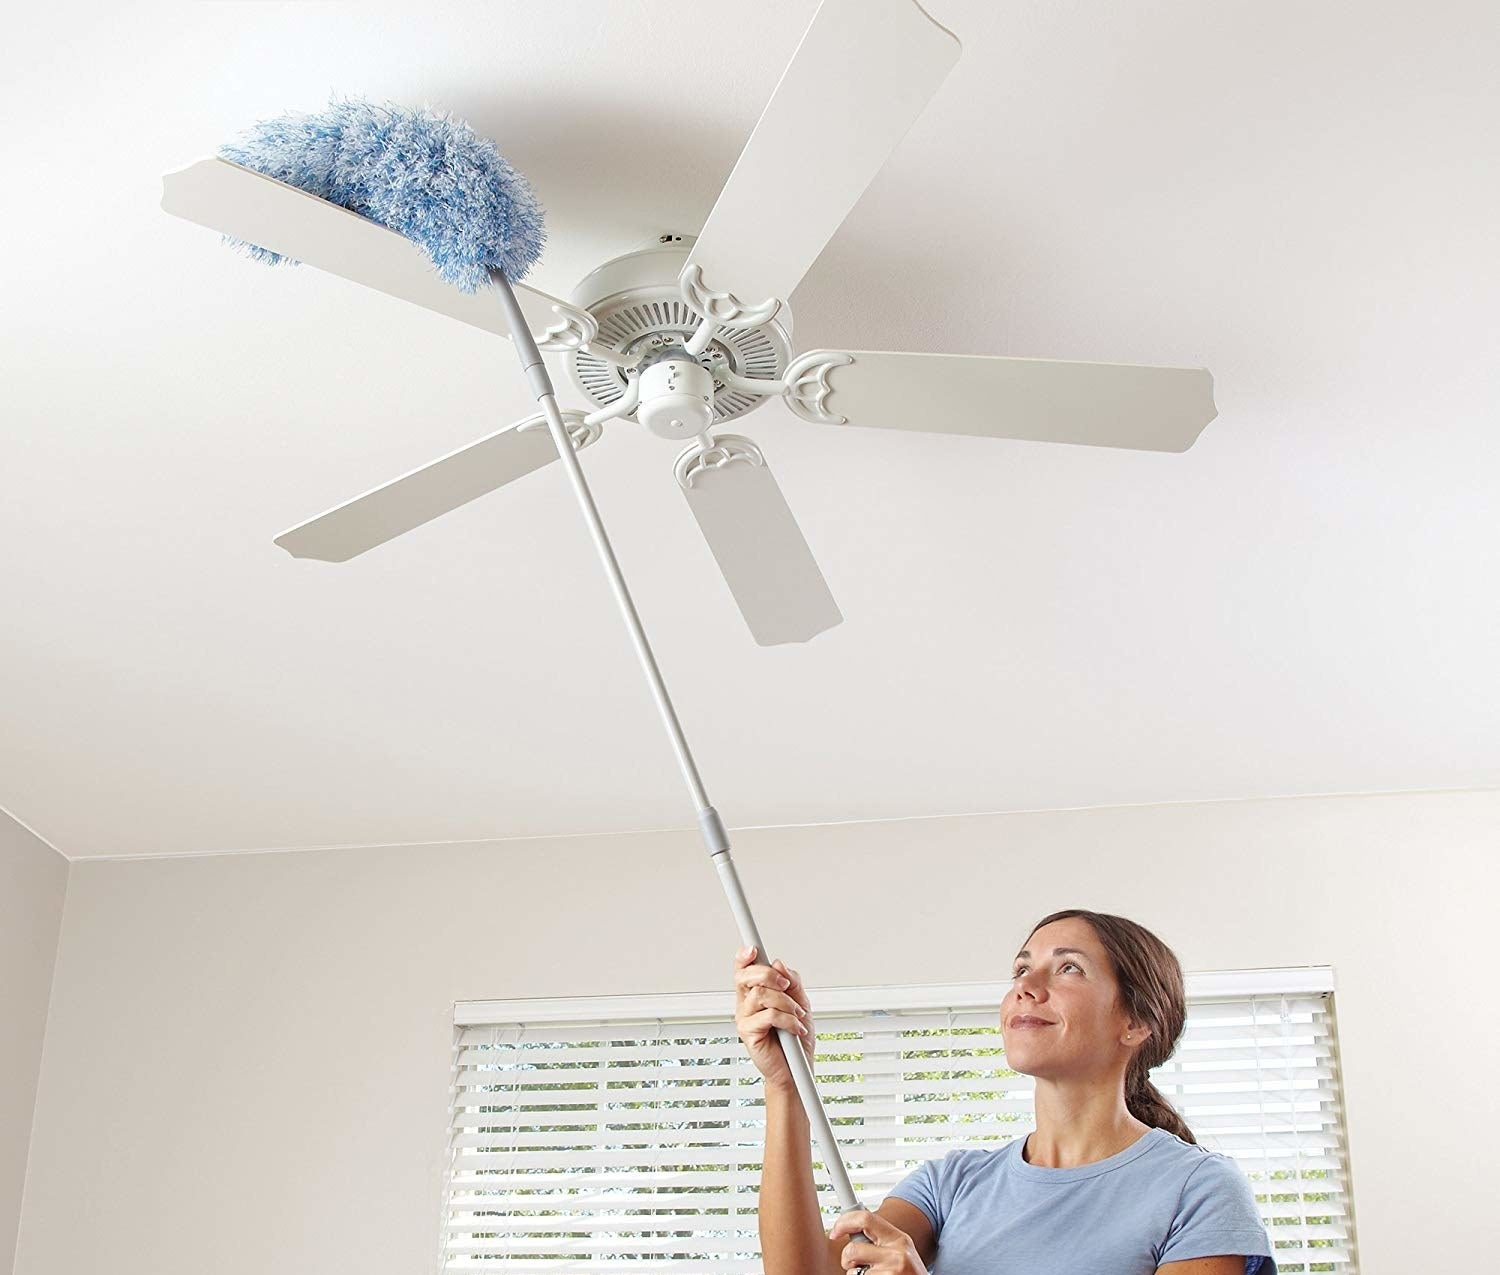 long handled duster being used on ceiling fan